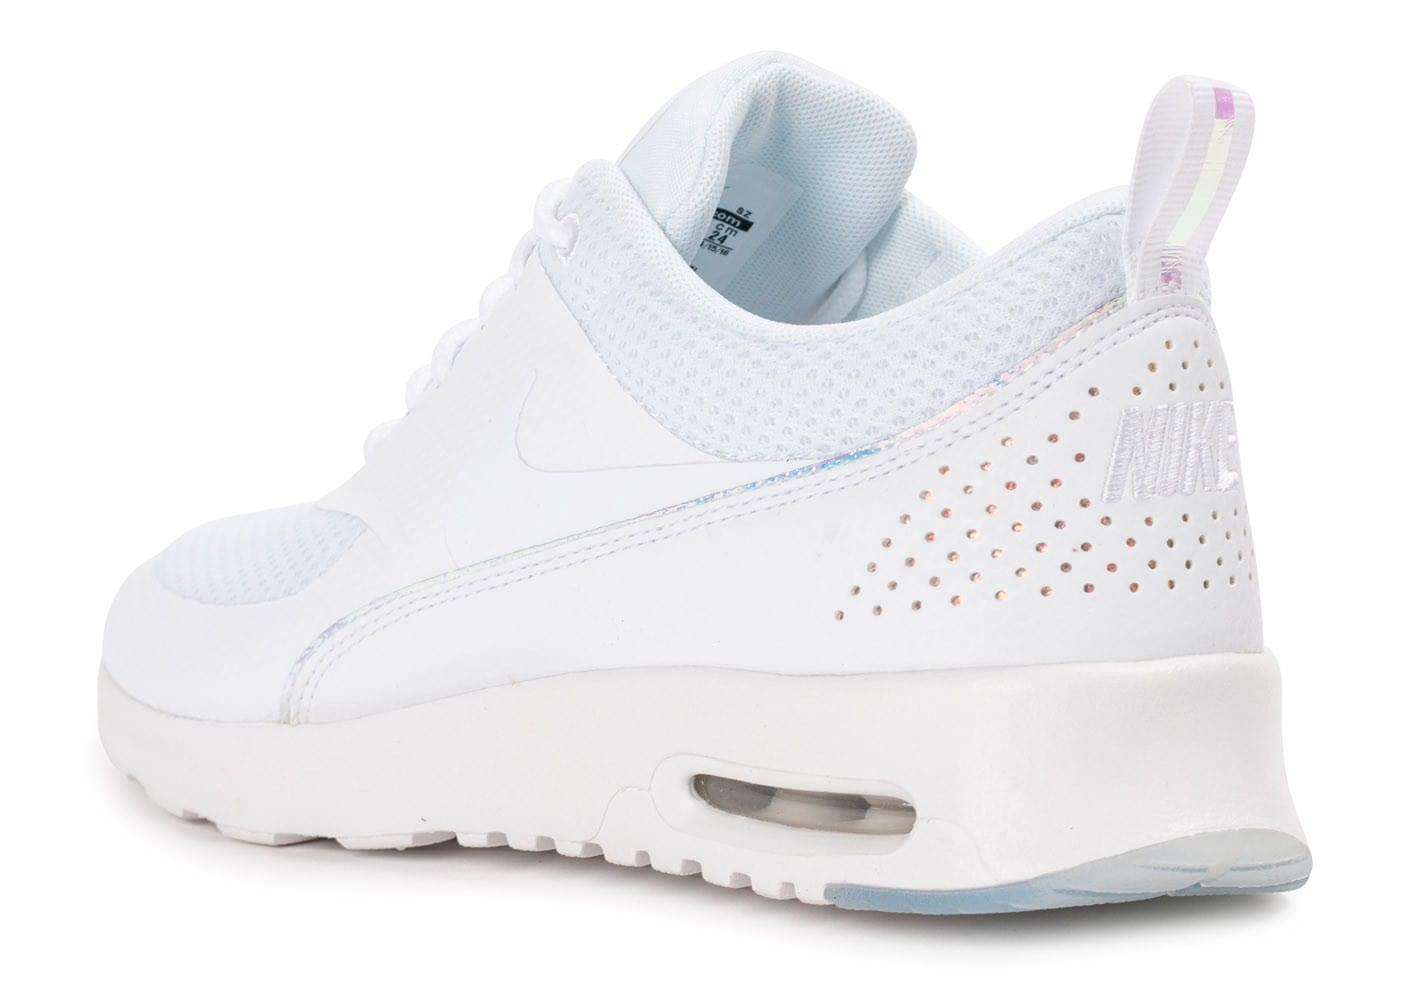 release date b2aef 00aa0 chaussures nike air max thea prm blanche iridescente vue arriere